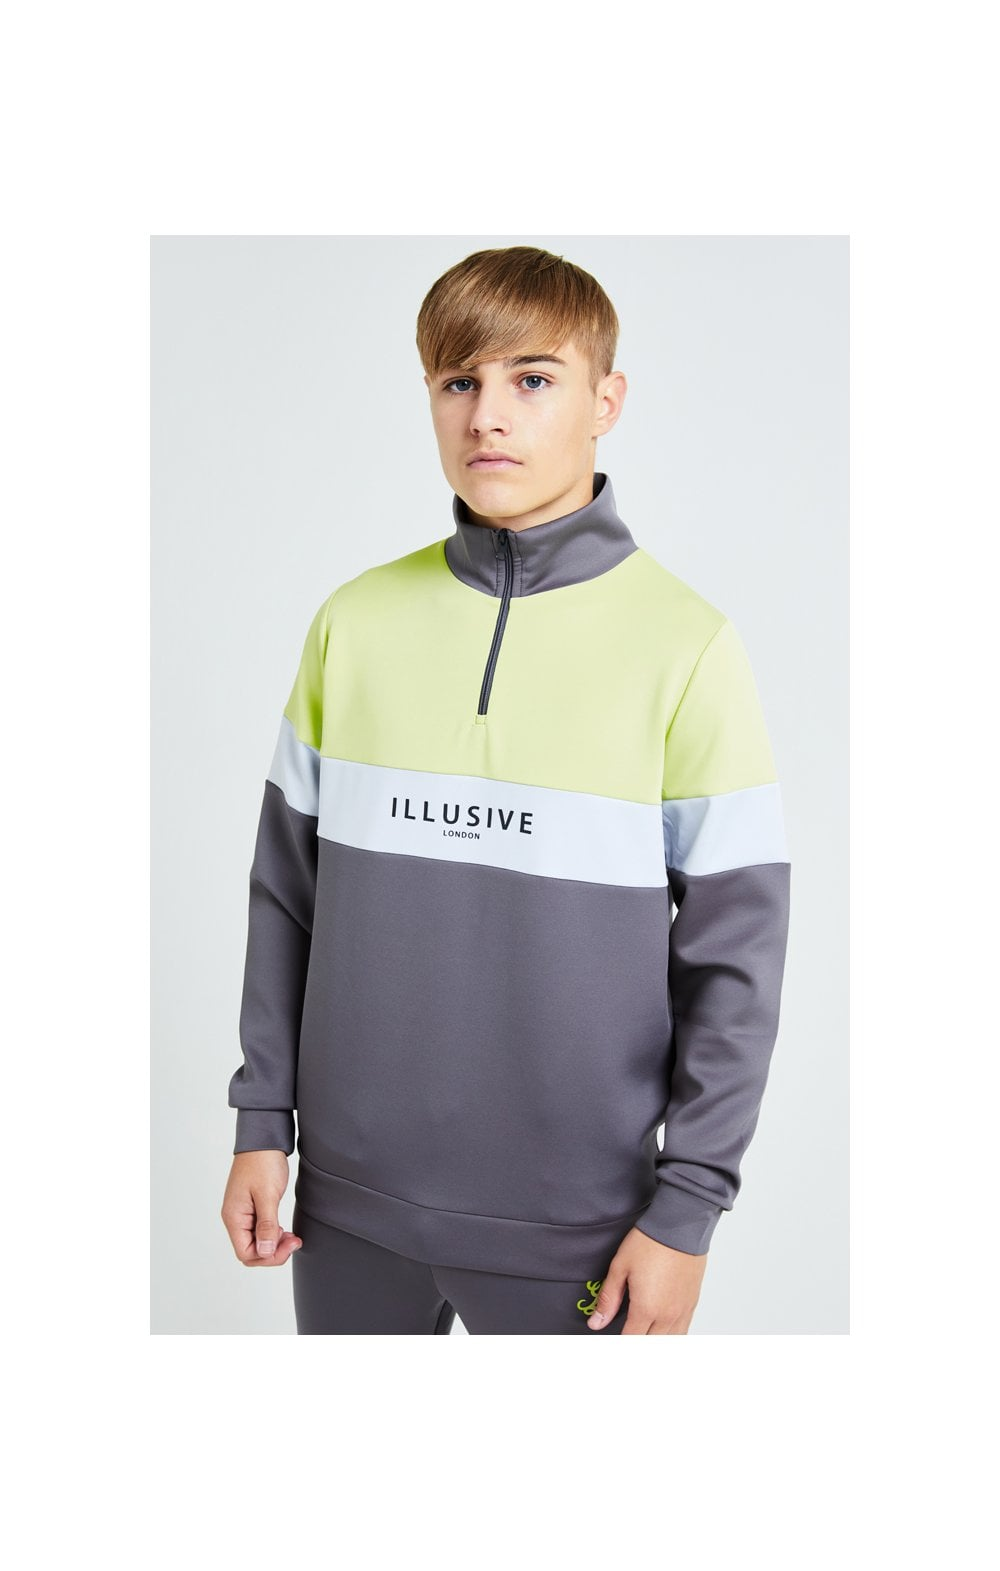 Illusive London Blaze Quarter Zip Hoodie - Dark Grey & Lime